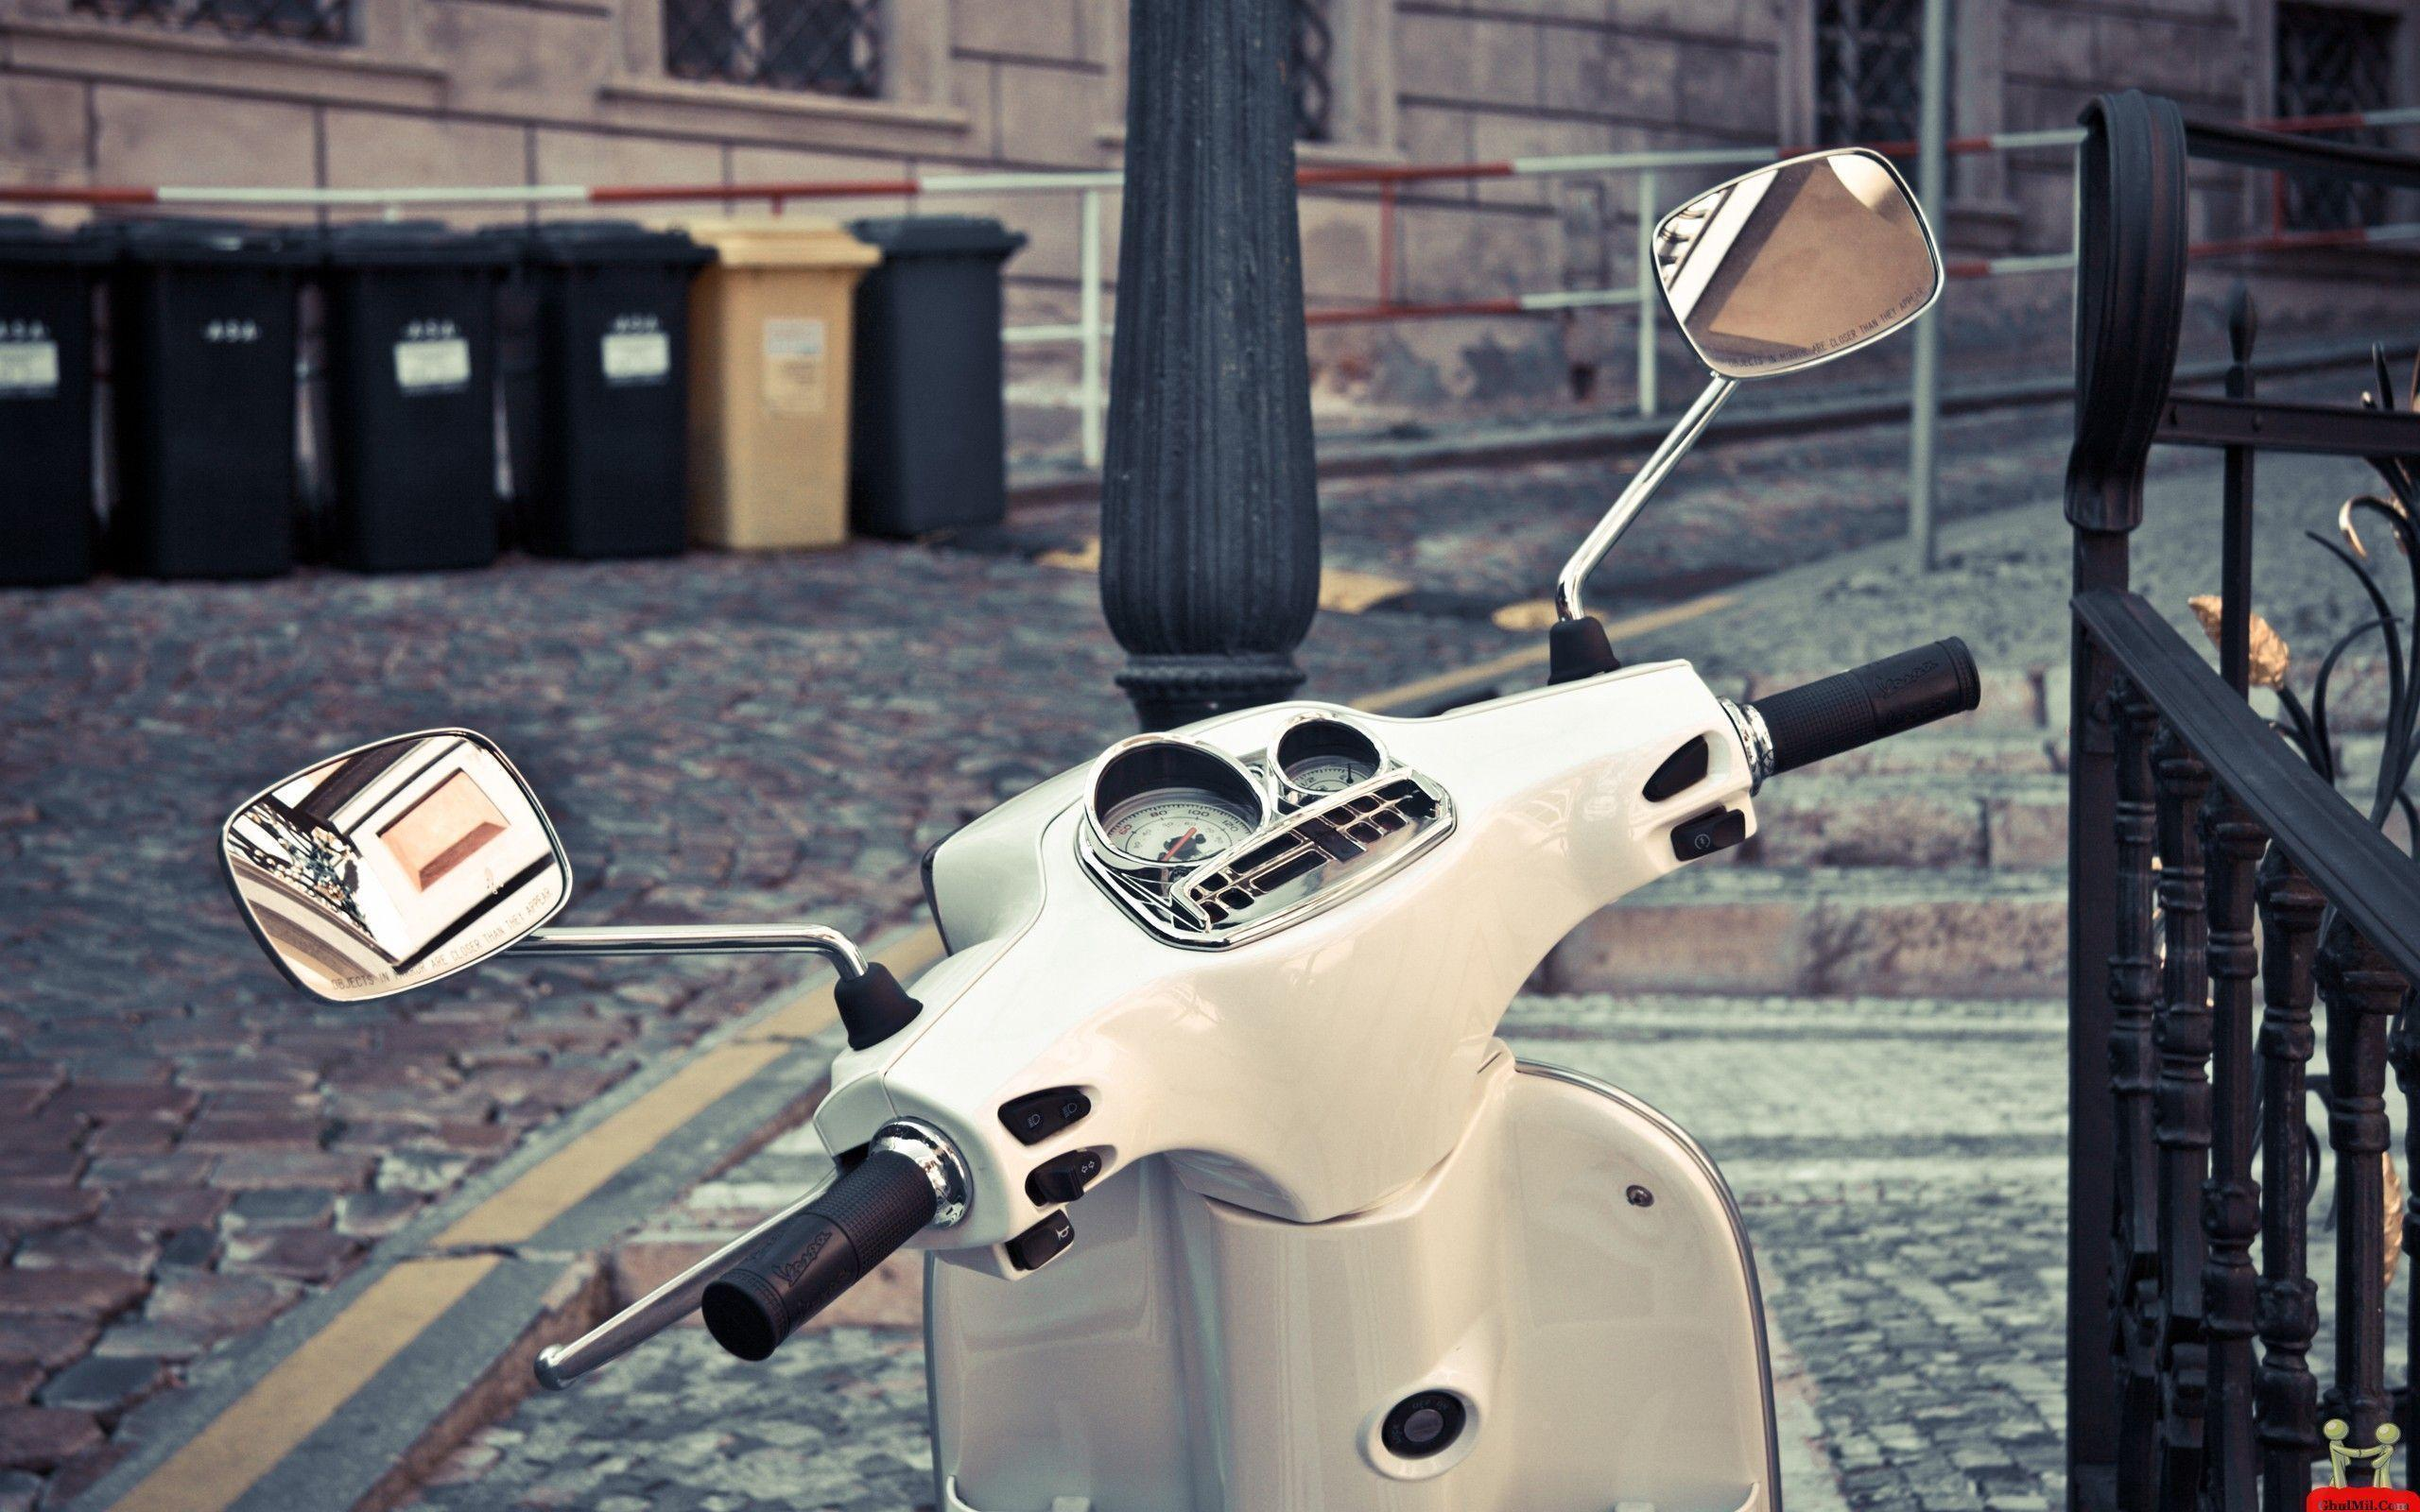 Related Pictures Italian Vespa Hd Wallpapers Car Pictures